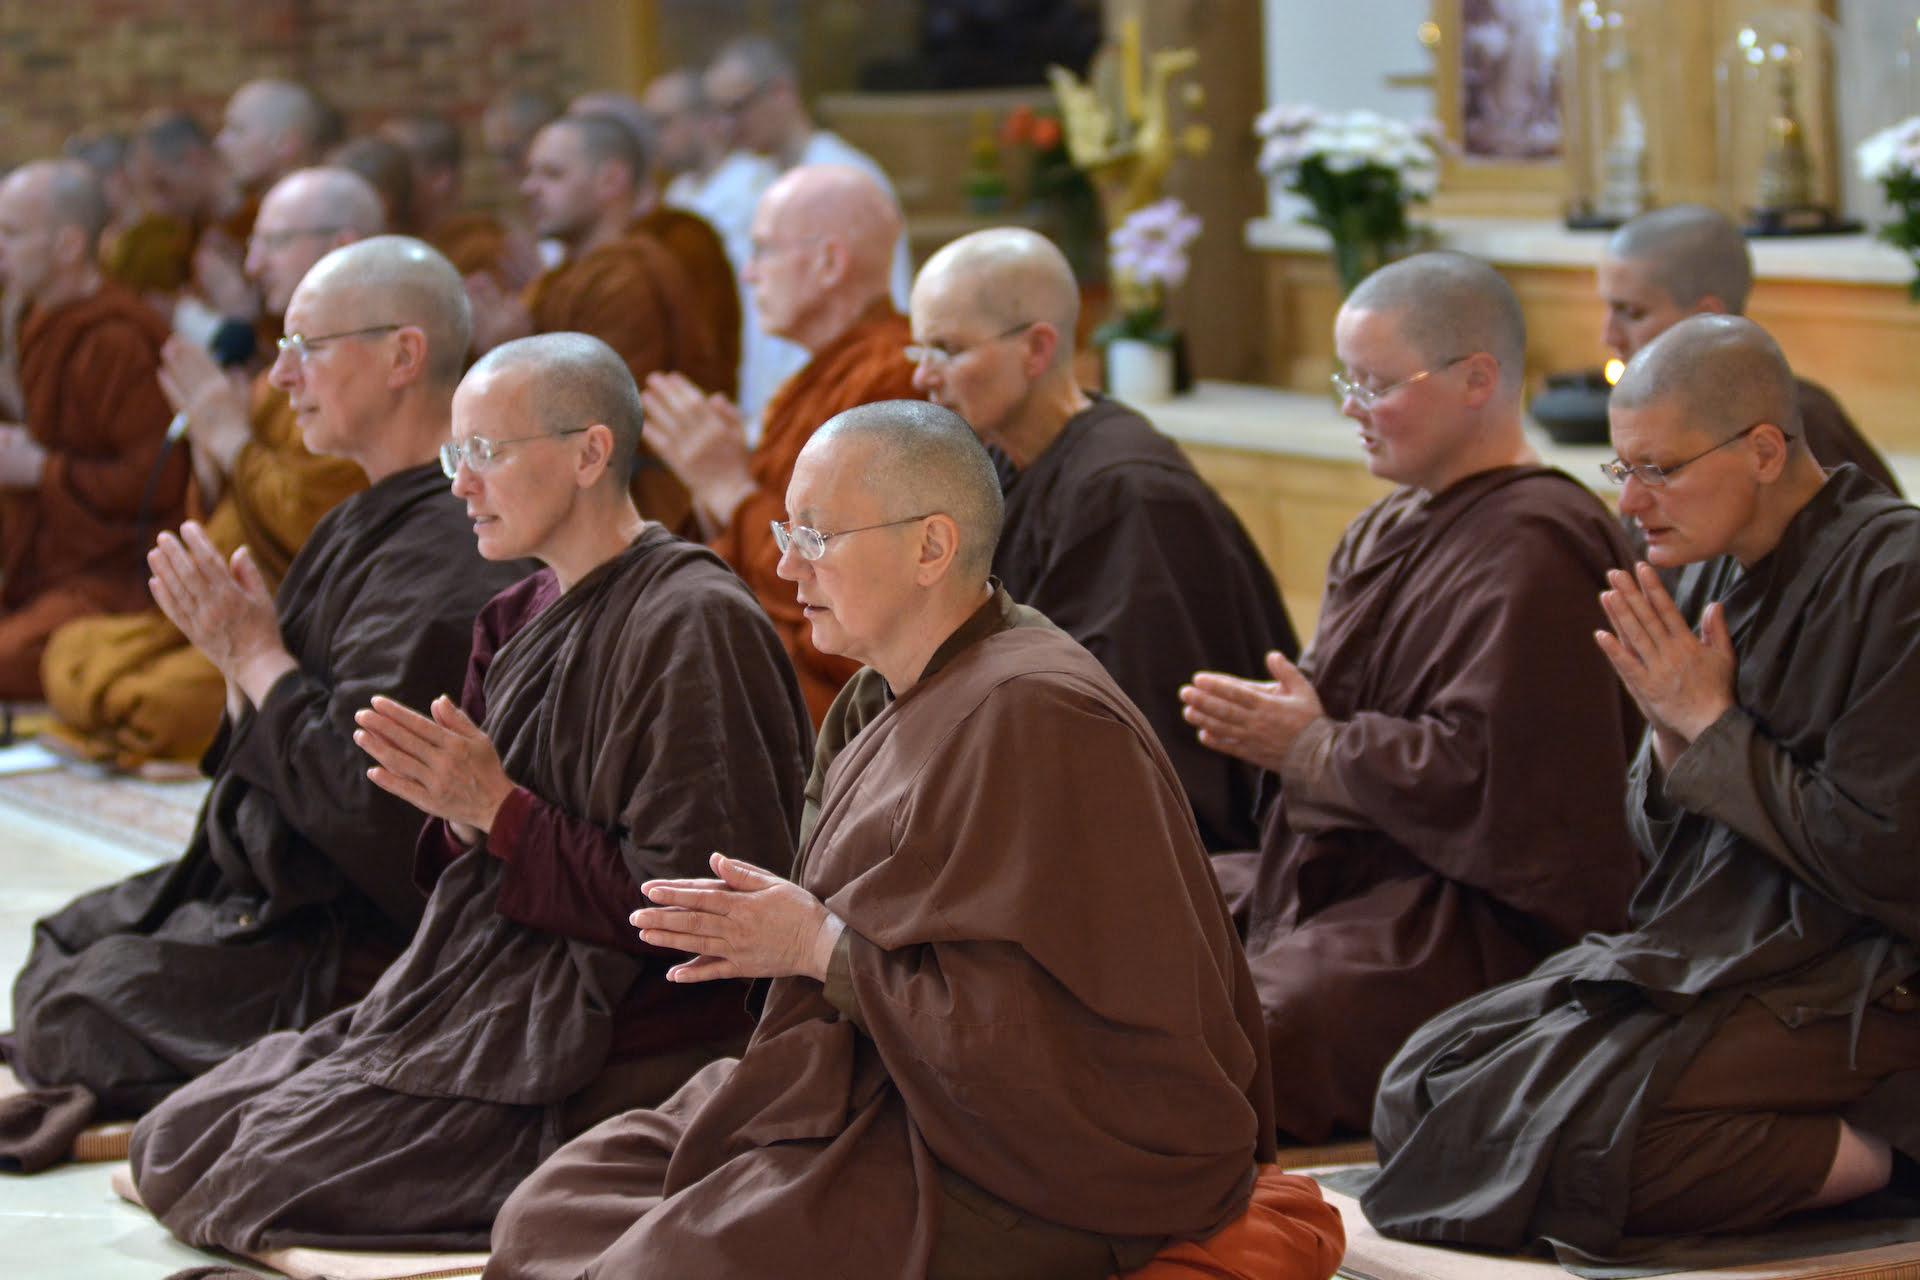 buddhist single men in pattersonville Browse photo profiles & contact who are buddhist, religion on australia's #1 dating site rsvp free to browse & join.